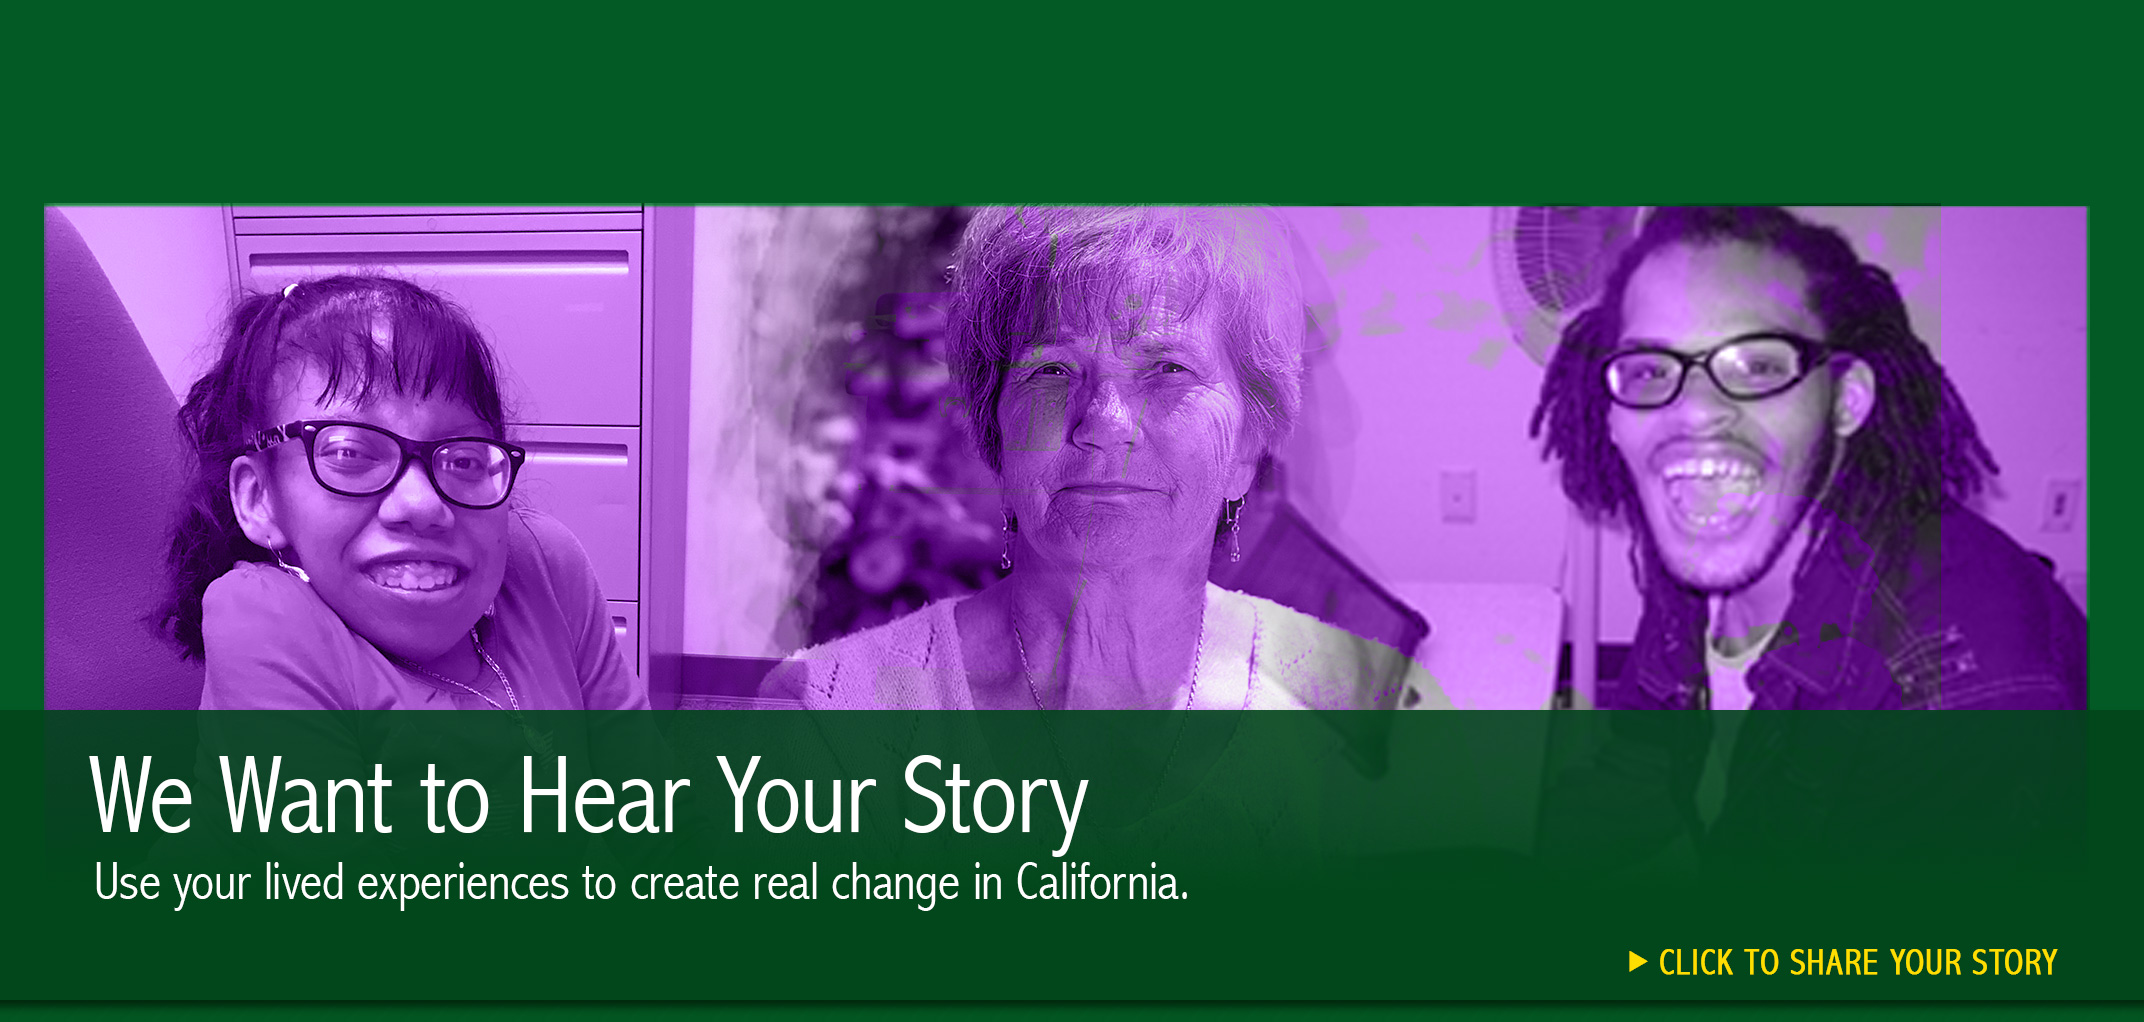 We Want to Hear Your Story. Use your lived experiences to create real change in California. Click to share your story. Collage photo of persons with disabilities and an older adult.